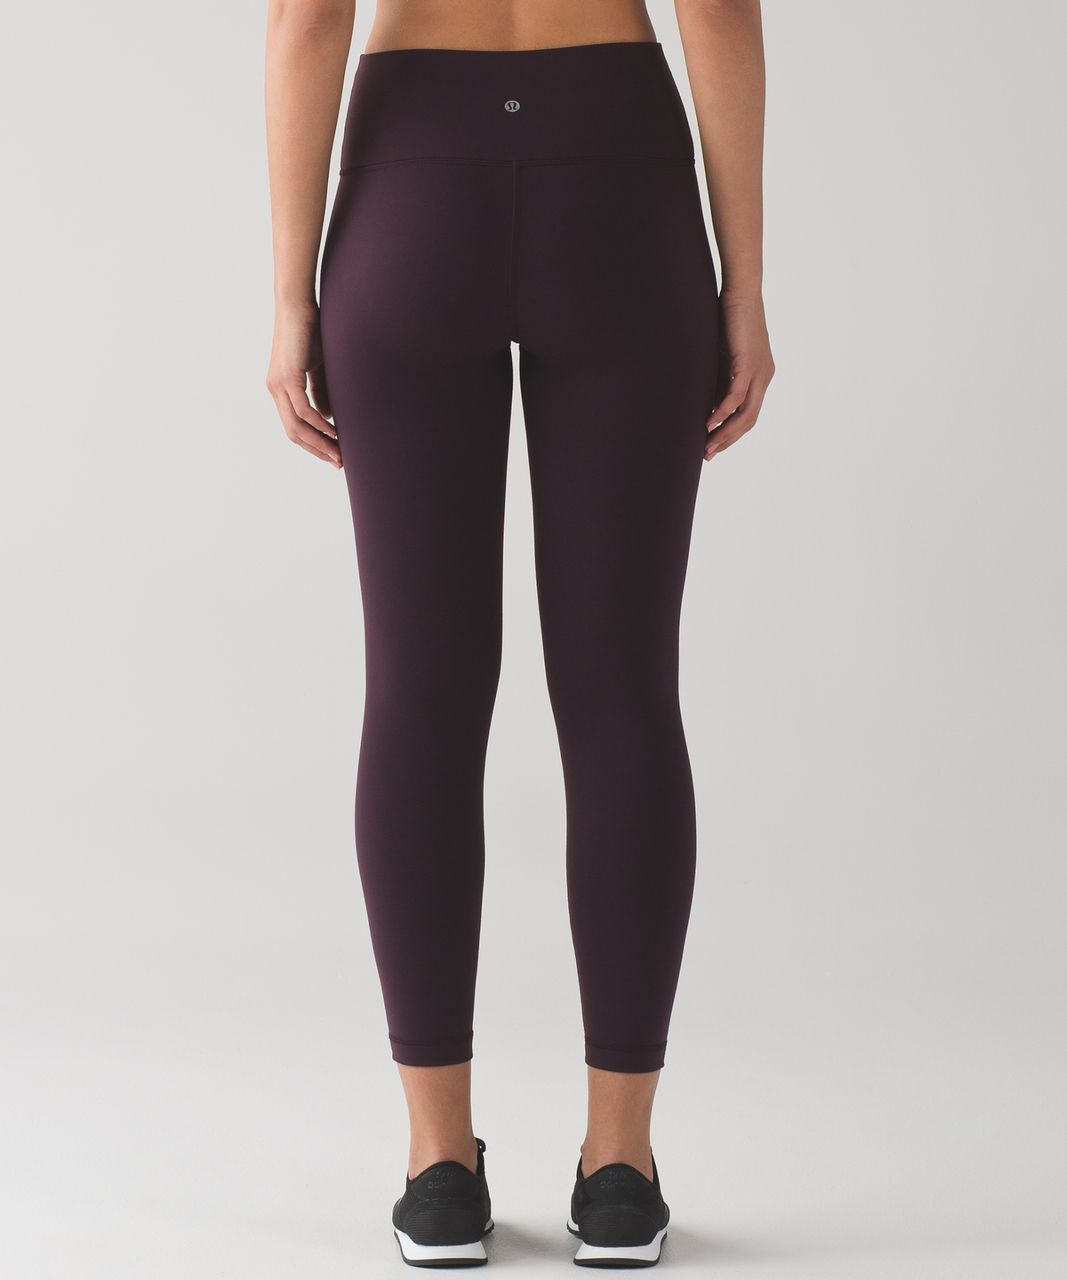 Lululemon High Times Pant - Black Cherry (First Release)